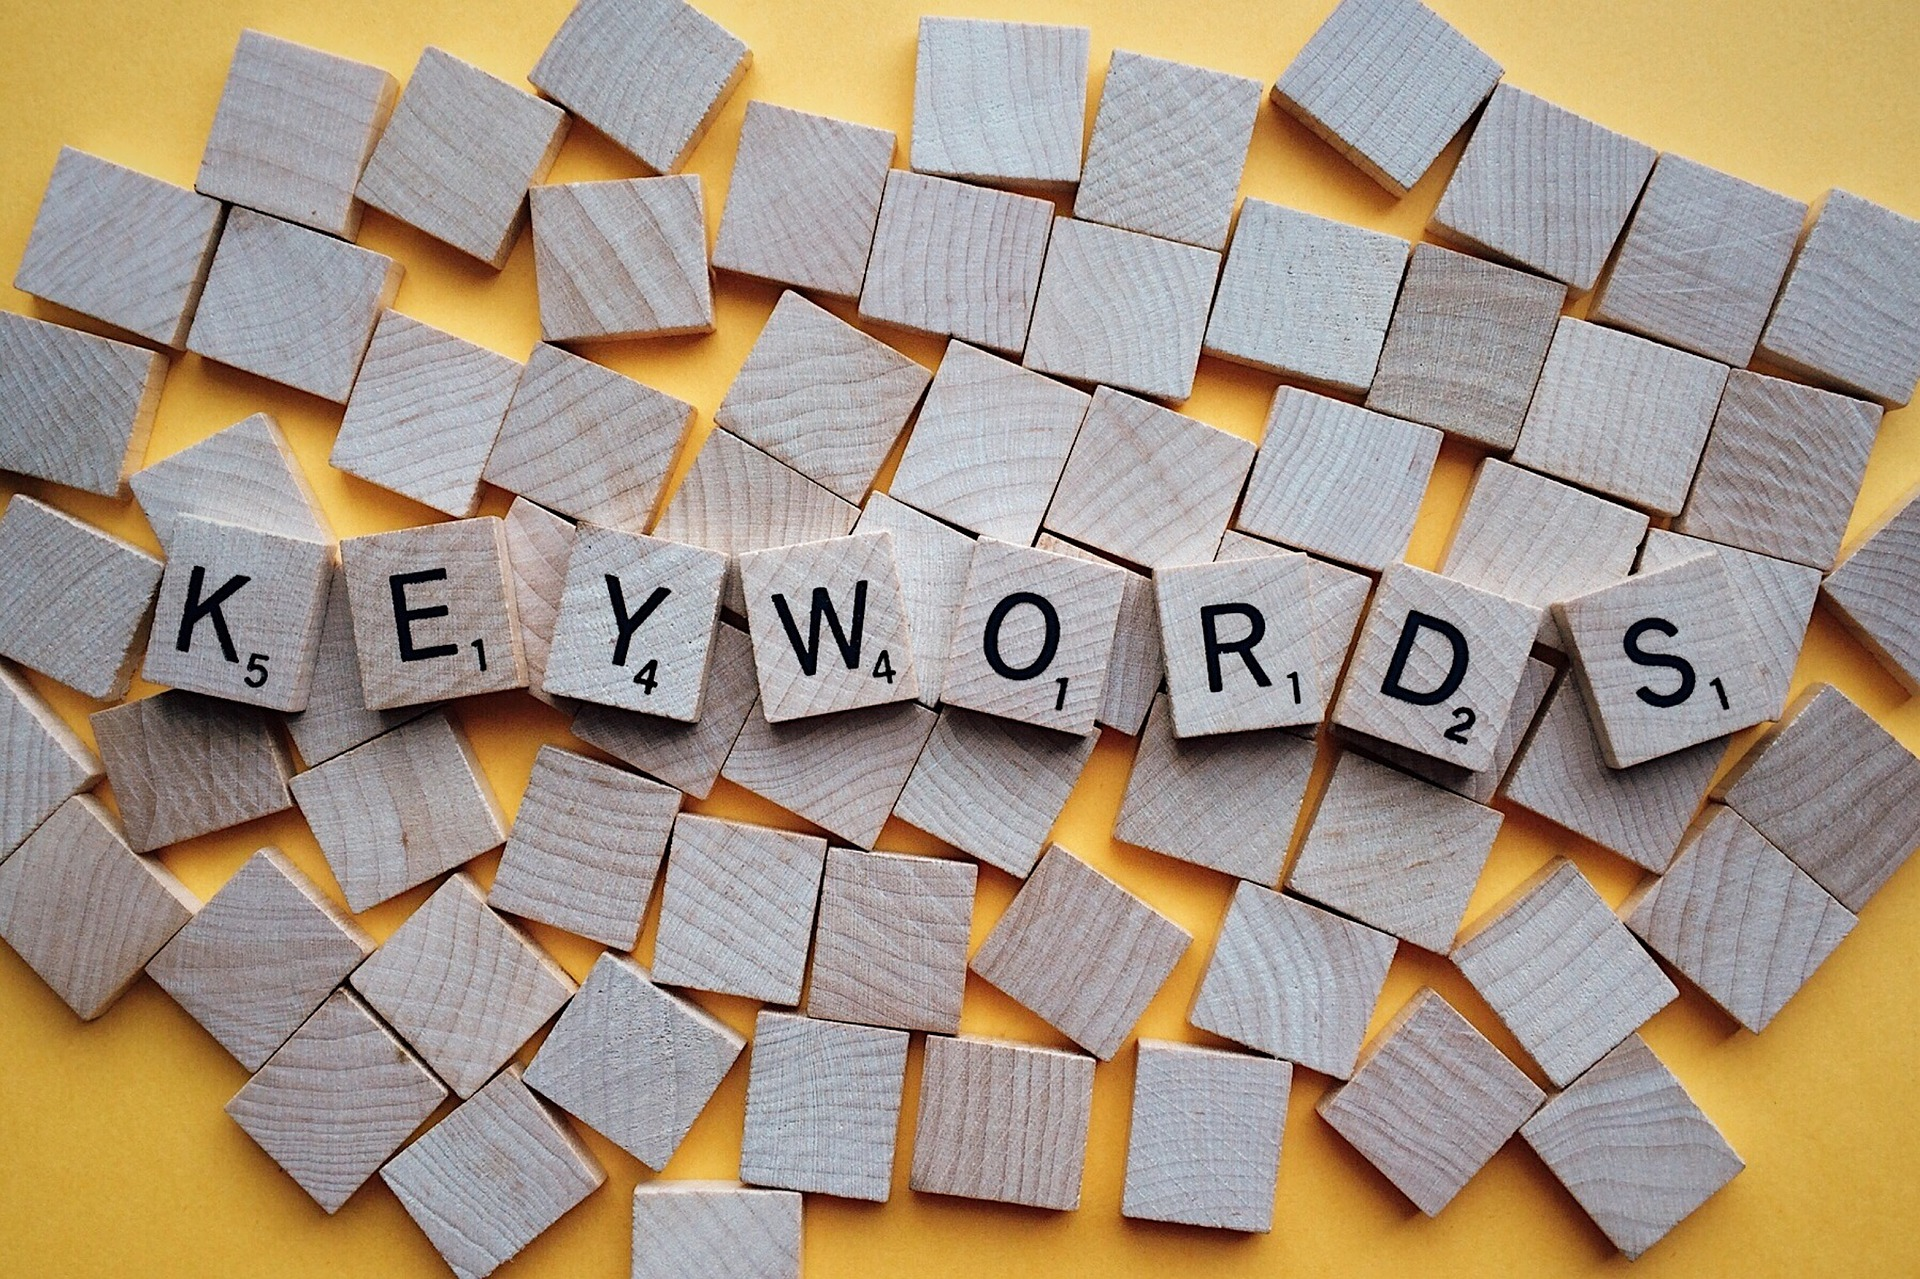 How Many Keywords Should You Use for a Page?